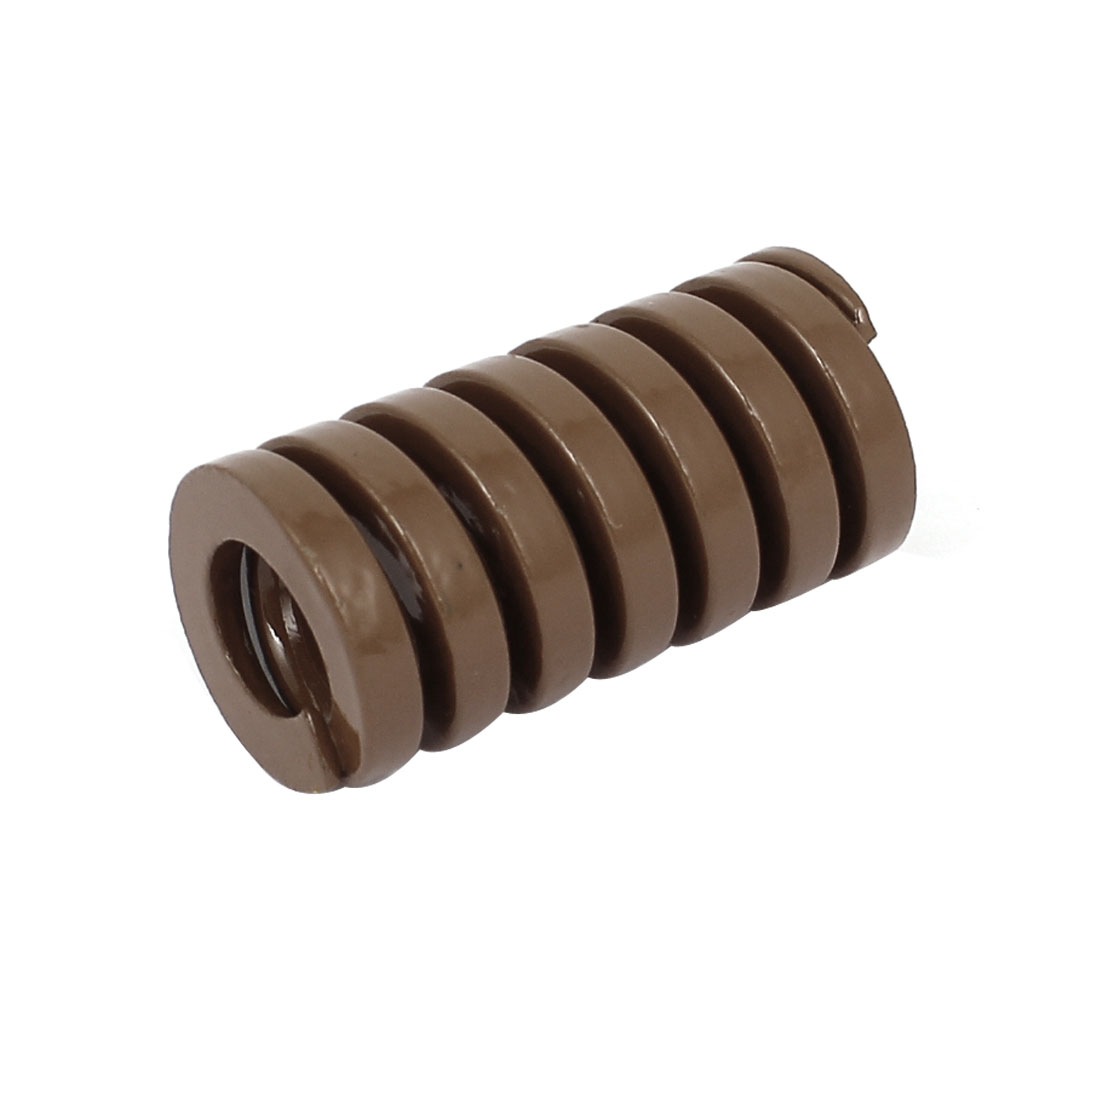 20mm OD 40mm Long Heavy Load Coil Stamping Compression Mold Die Spring Brown